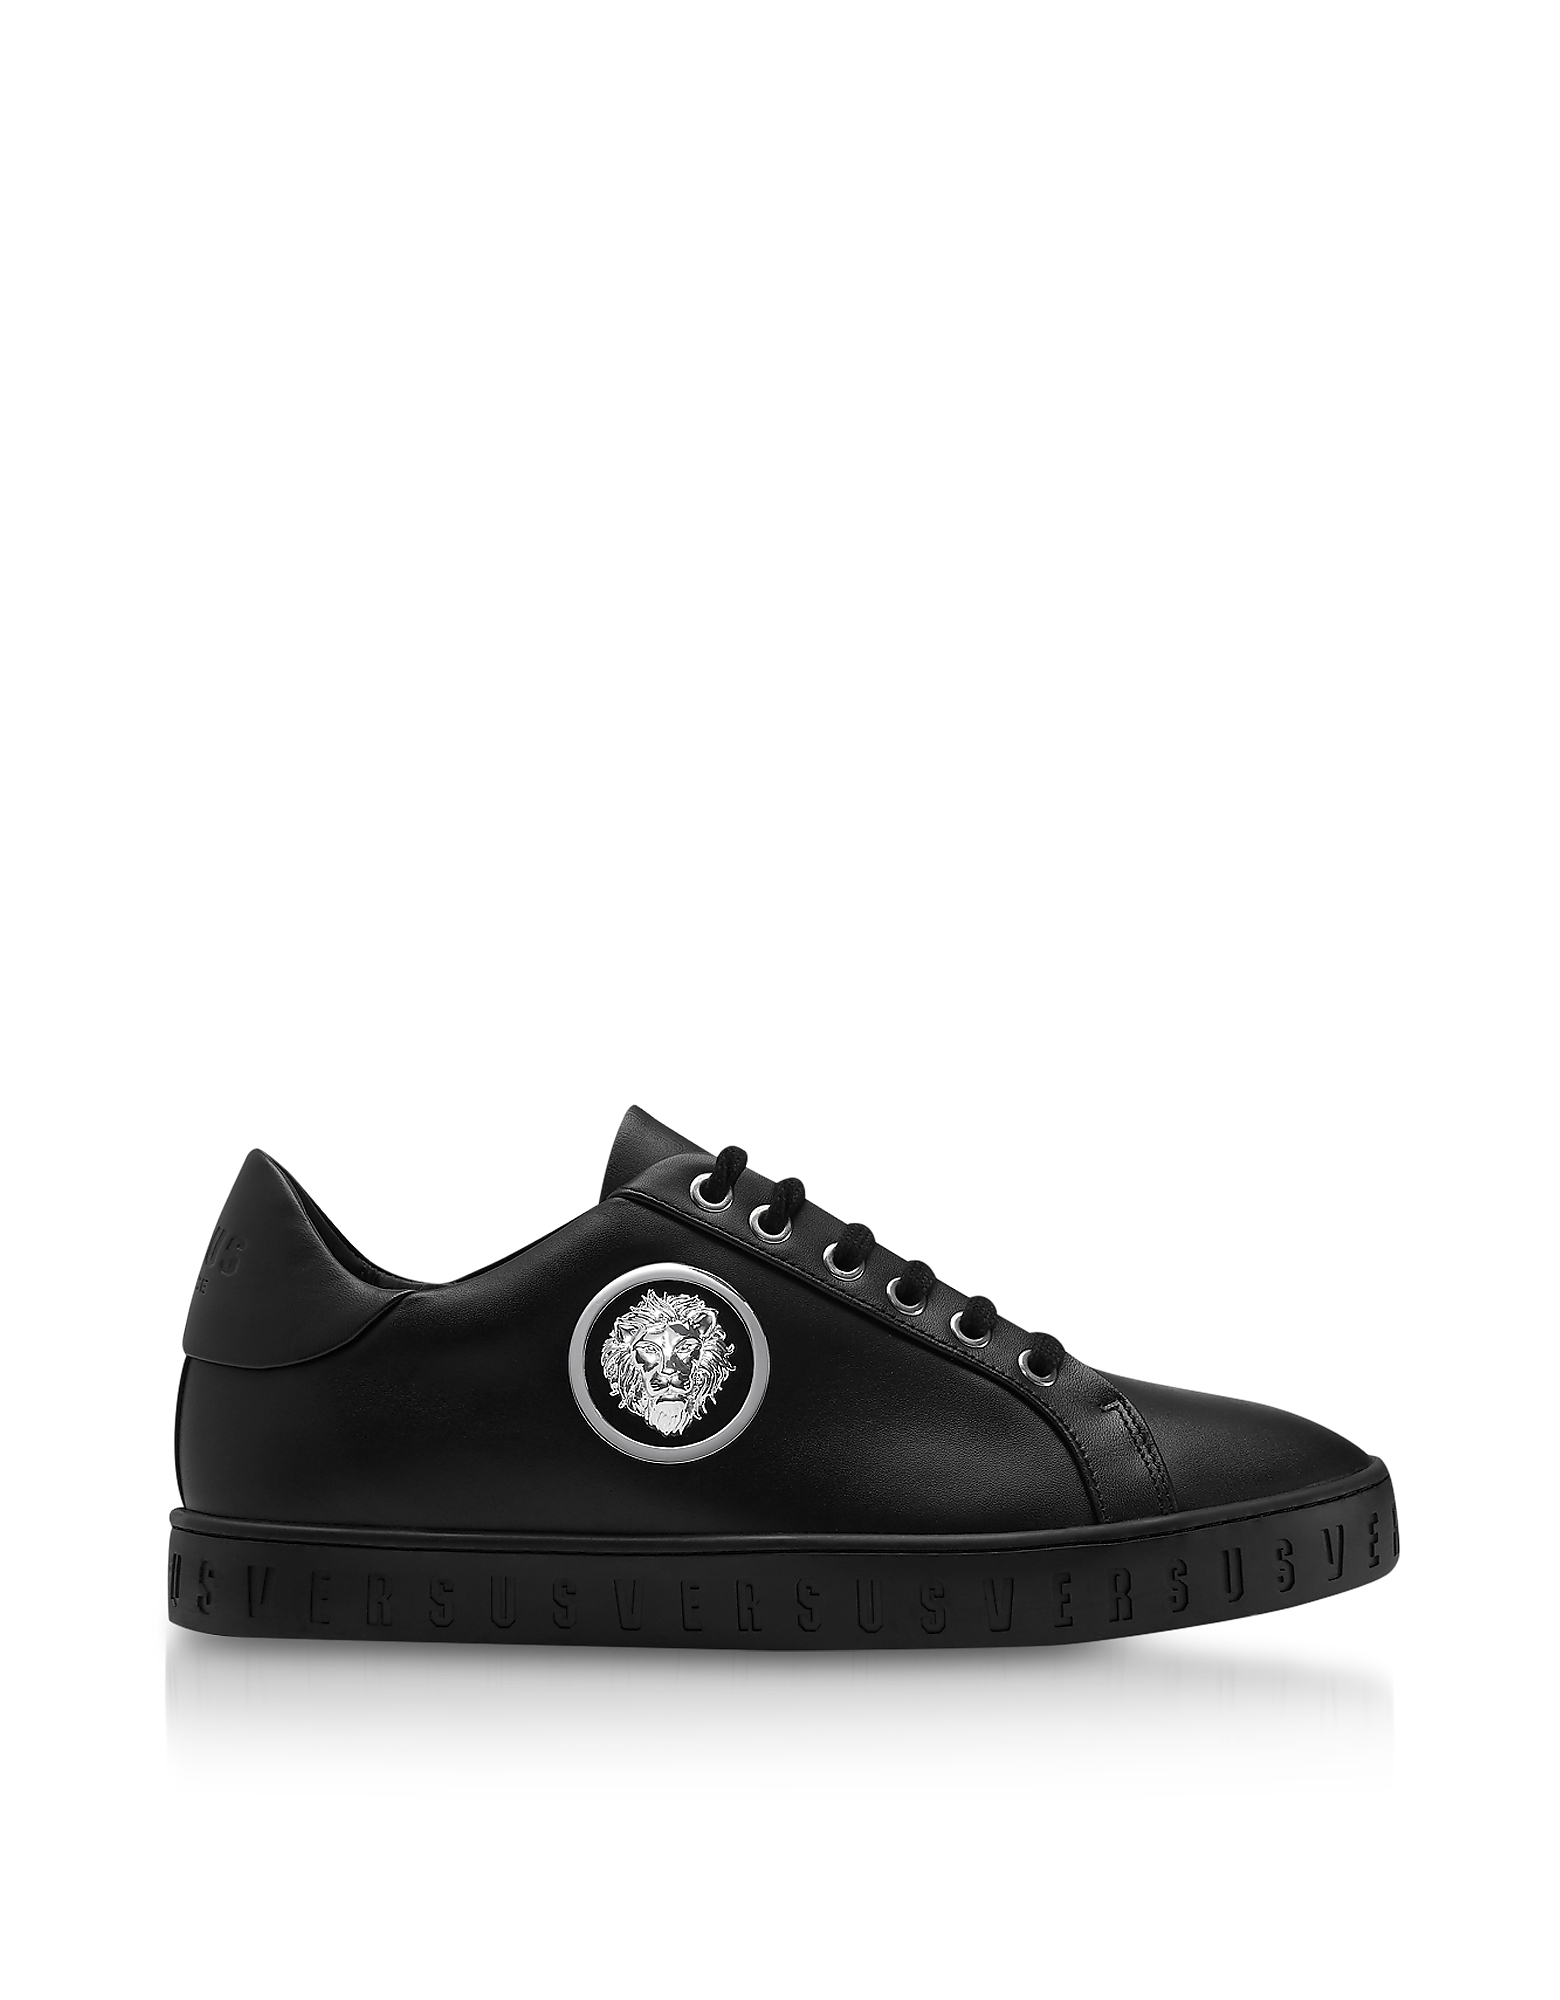 Black Leather Low Top Men's Sneakers w/Silvertone Metal Lion Head Logo